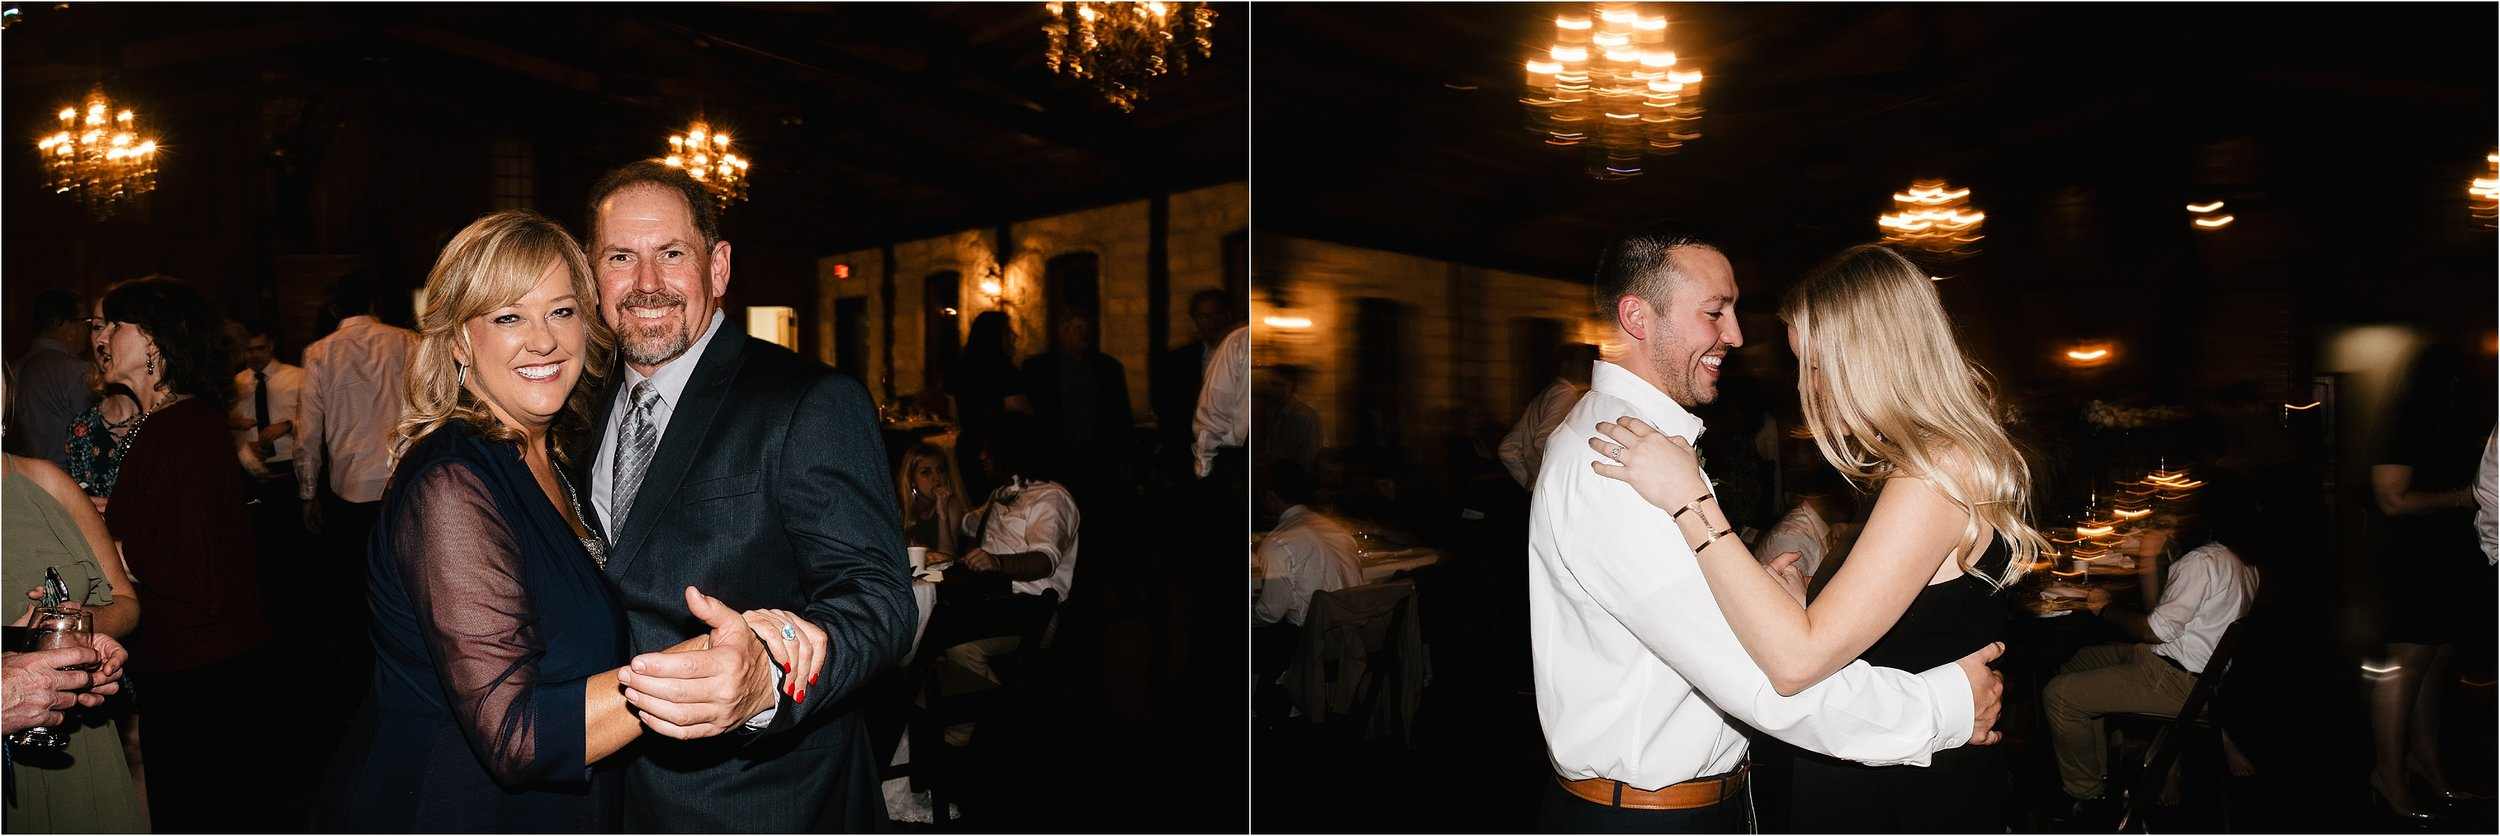 oklahoma wedding photographer reception family friends hugs congratulations best wishes toasts dancing the springs norman okc